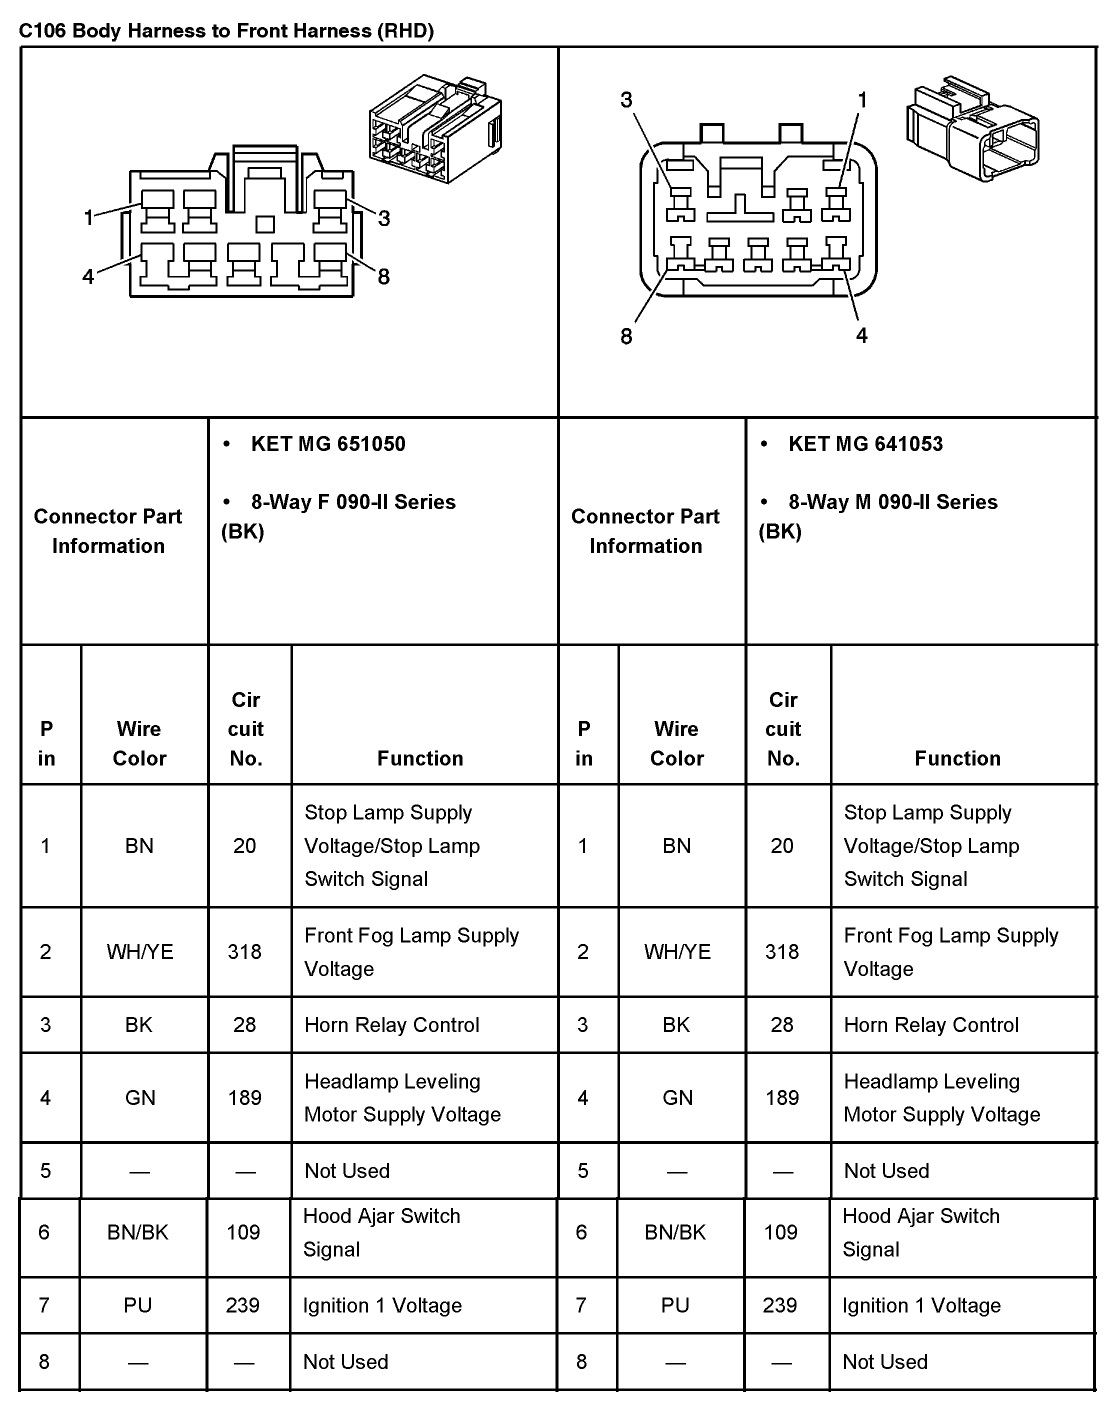 2005 aveo master connector list and diagrams rh aveoforum com 2005 Chevy Aveo Wiring-Diagram Electric Mirrow 2006 Chevy Aveo Radio Wiring-Diagram